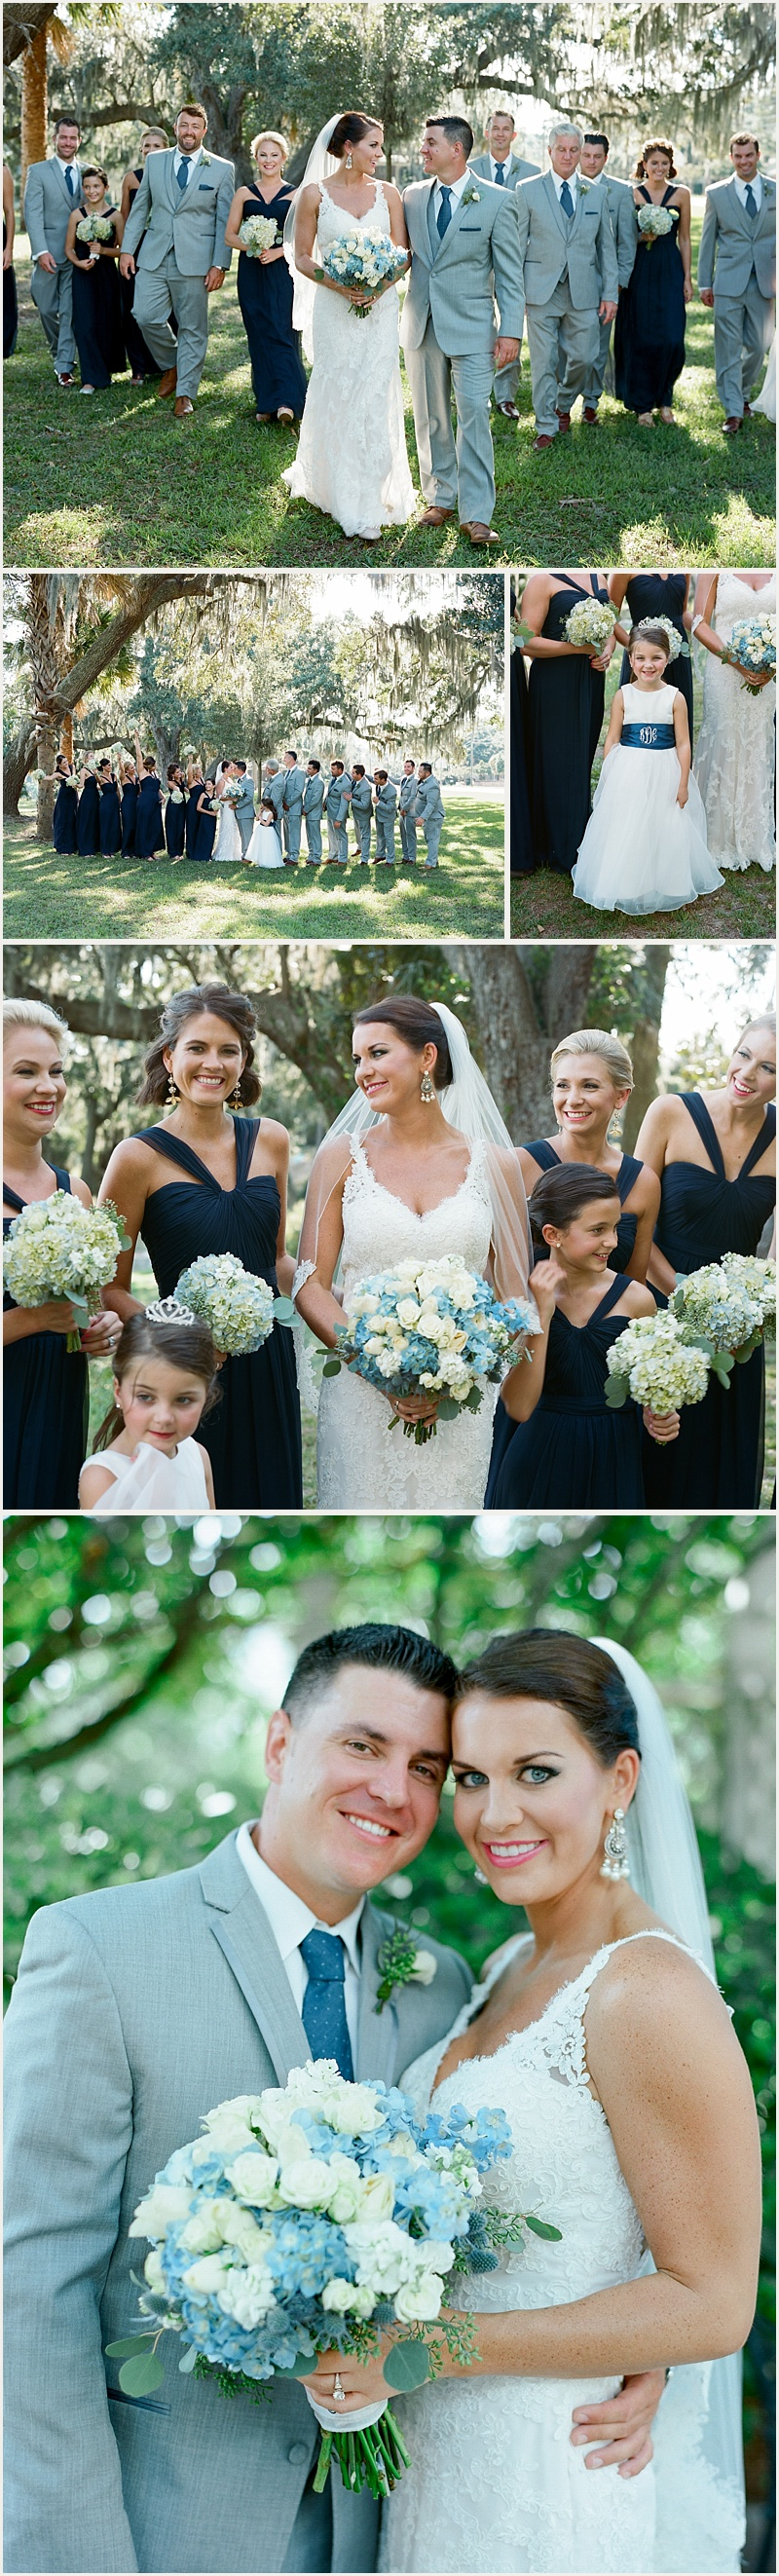 LaurenJonasPhotography-lauren-and-cole-beaufort-sc-wedding-photography-1002.jpg